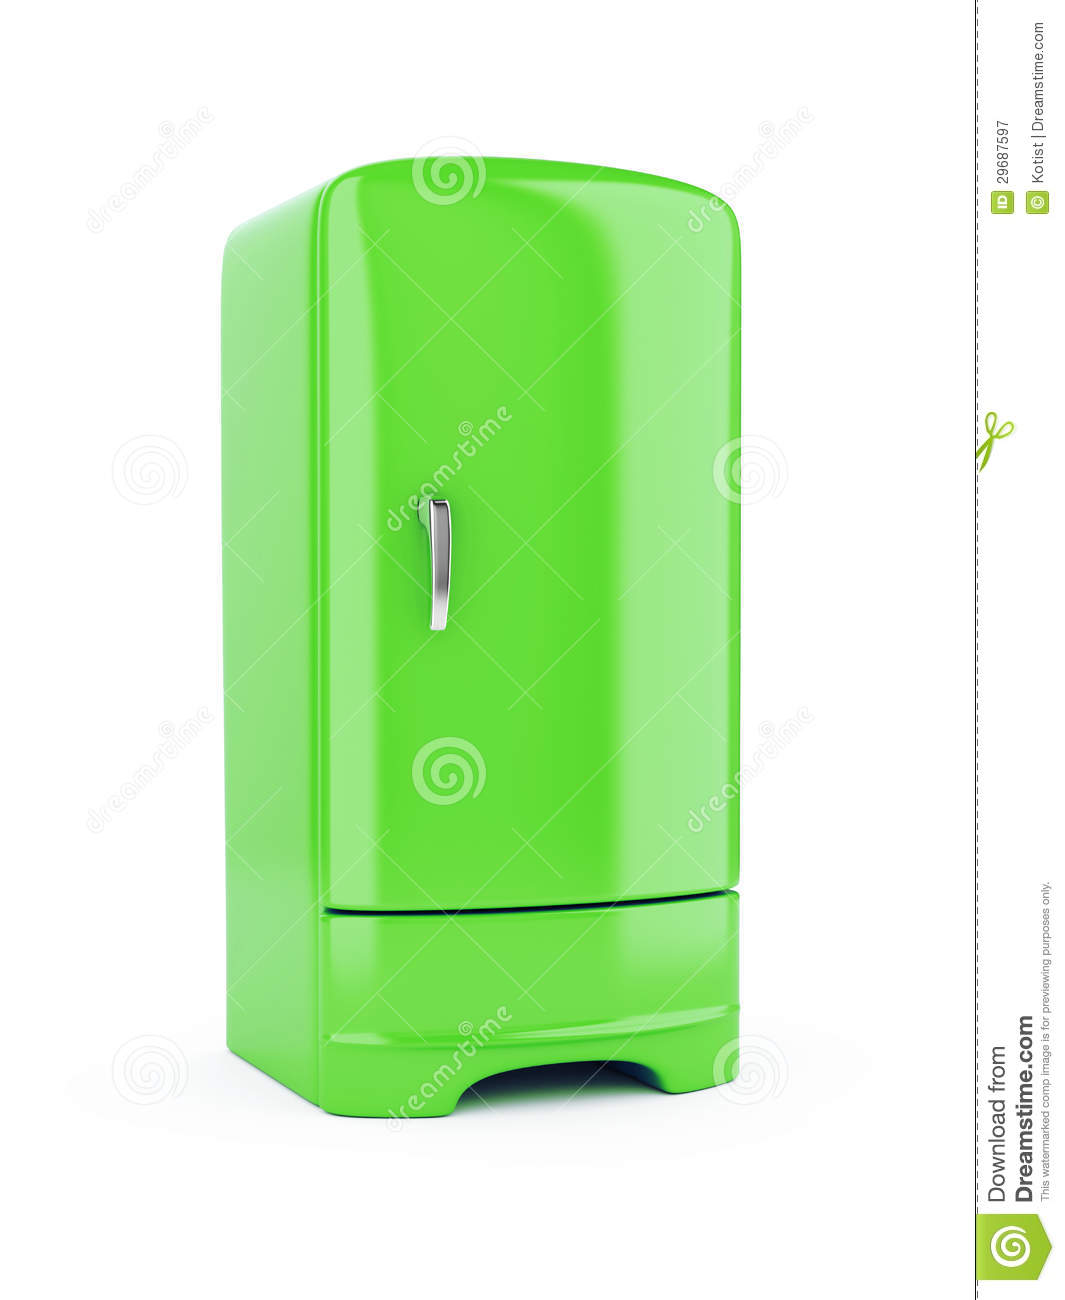 Green Refrigerator Royalty Free Stock Photography - Image ...